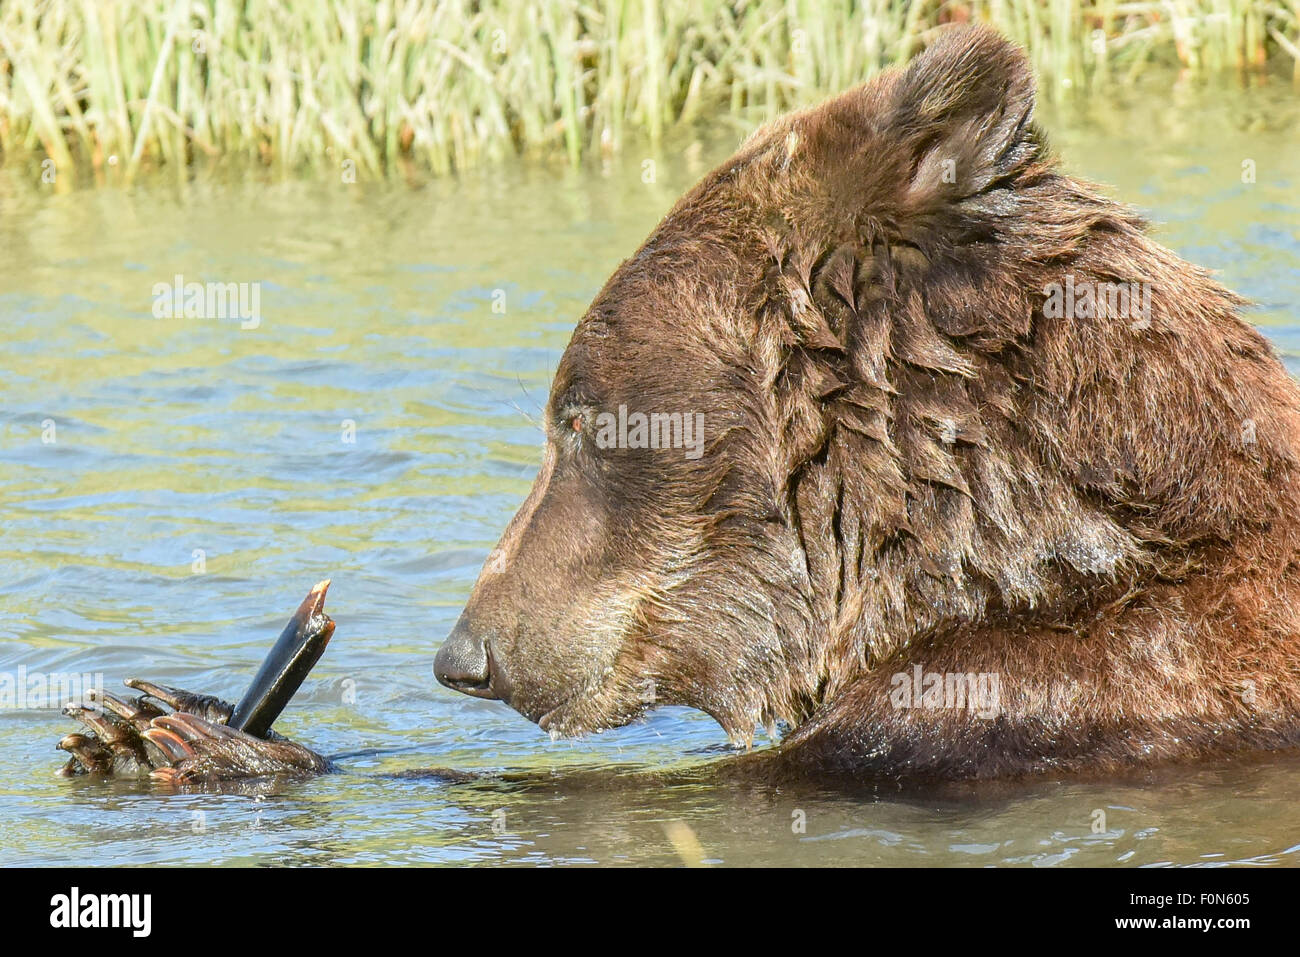 A wet brown bear / grizzly bear examines a bone for marrow while swimming in a stream near Anchorage Alaska - Stock Image